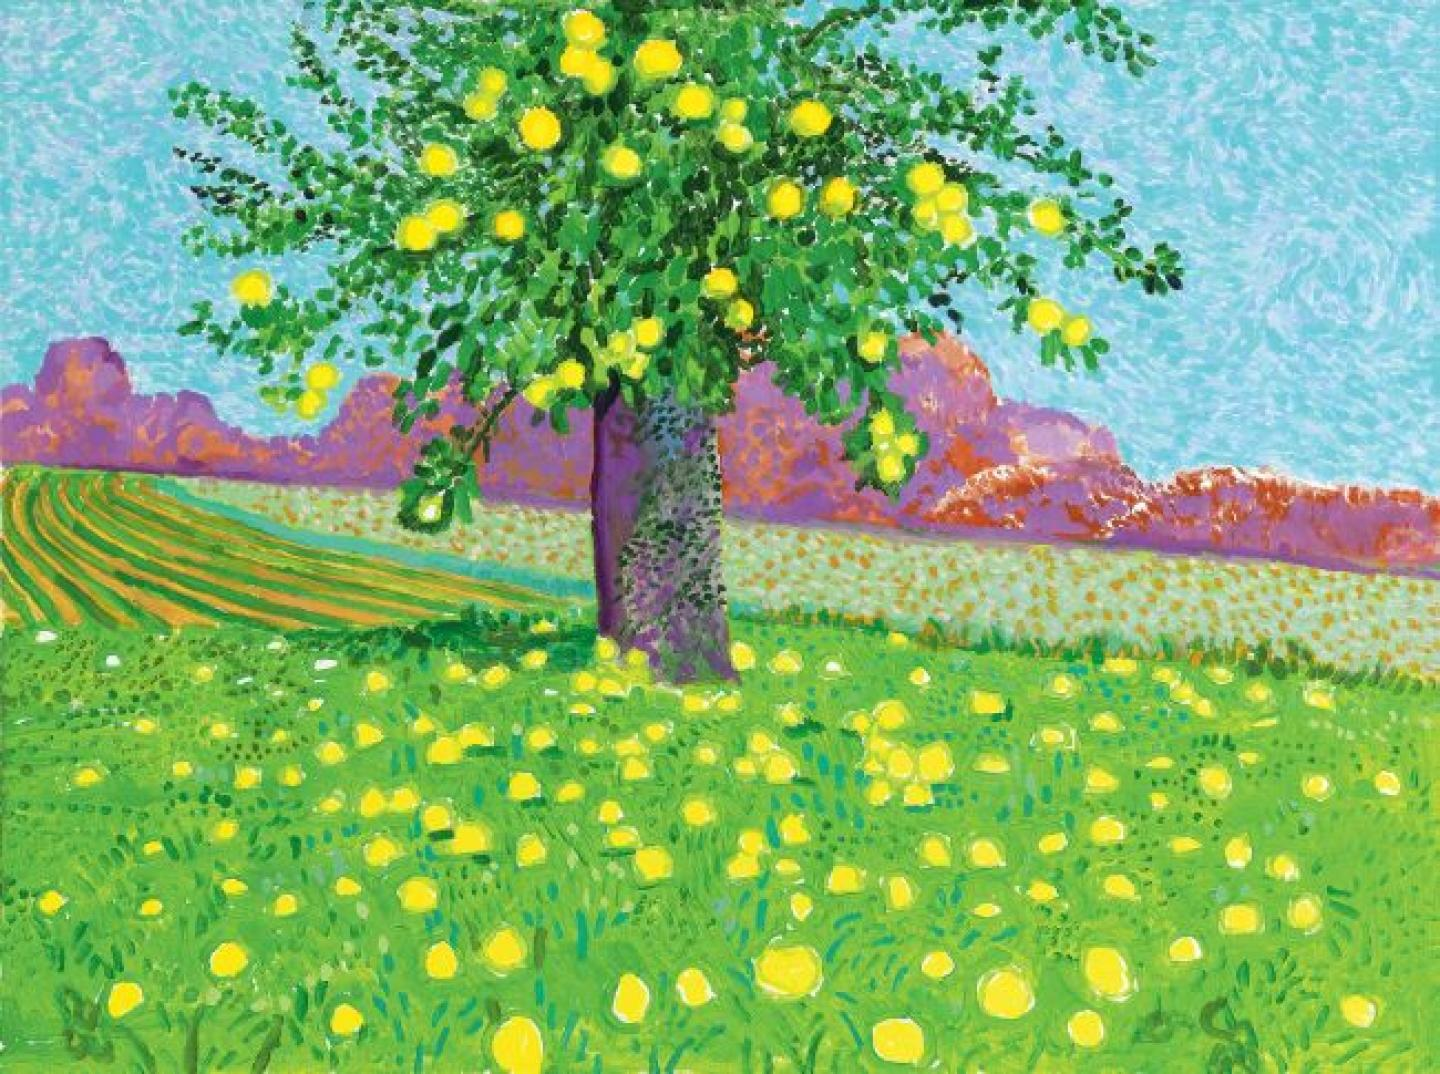 Apples on Tree and Ground, David Hockney, Acrylique sur toile, 201991 x 122 cm, ©Galerie Lelong & Co